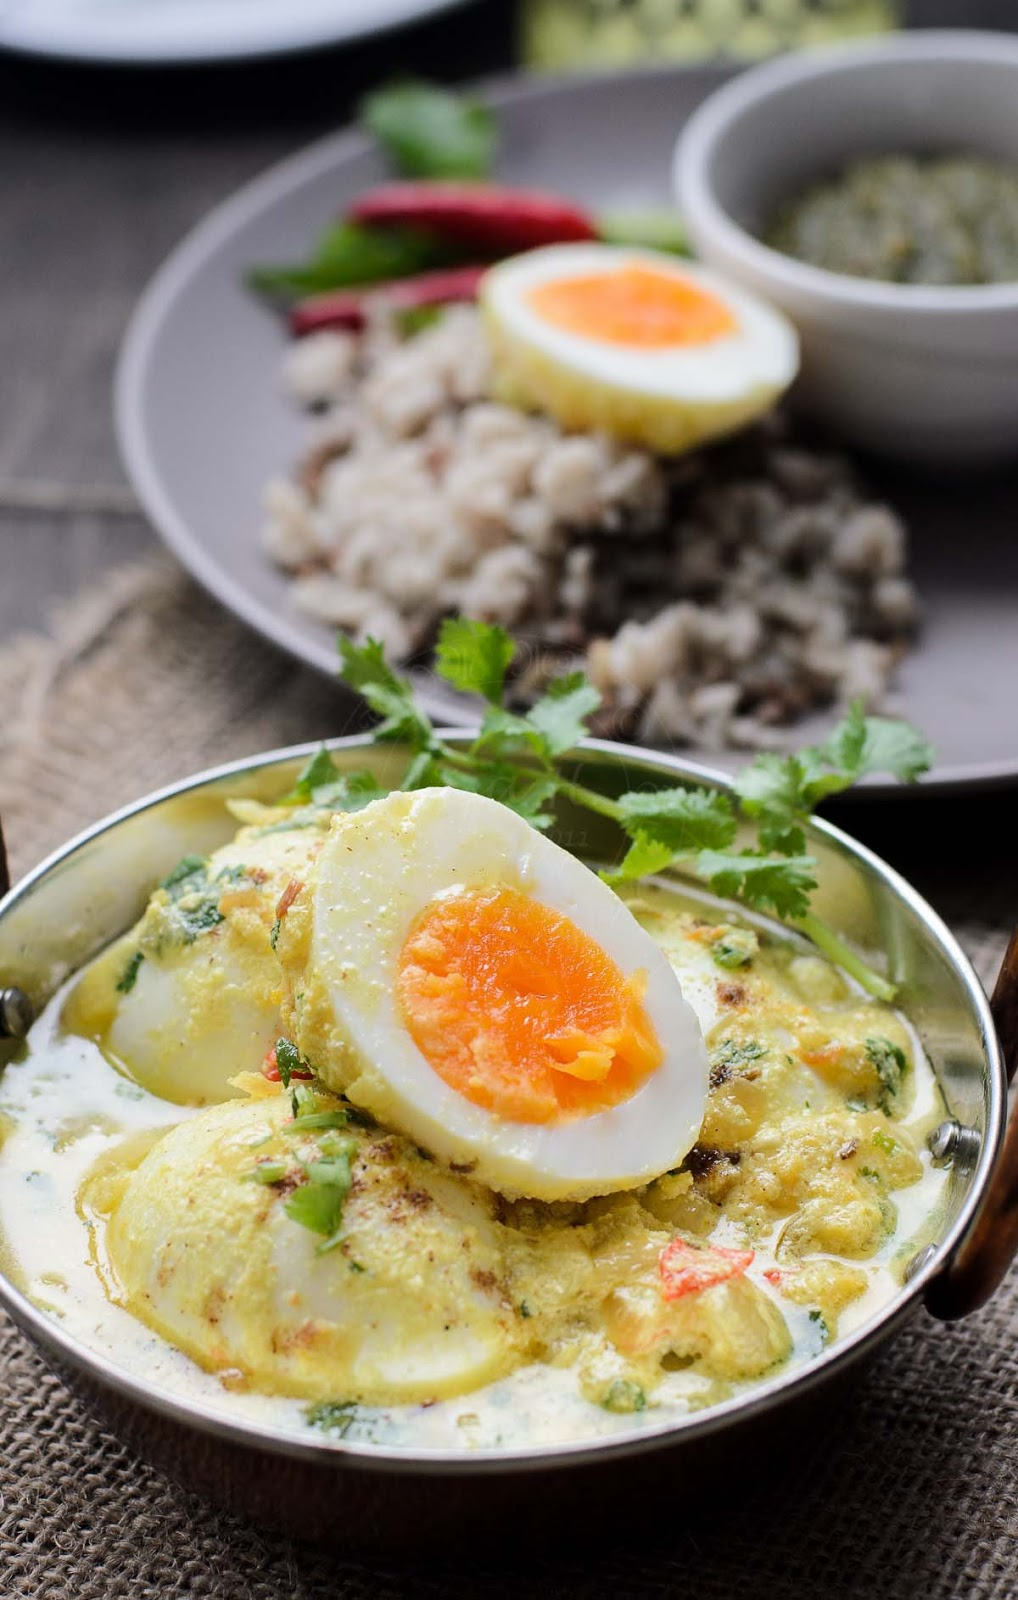 Simple and easy Eggs in Spiced Yogurt Sauce